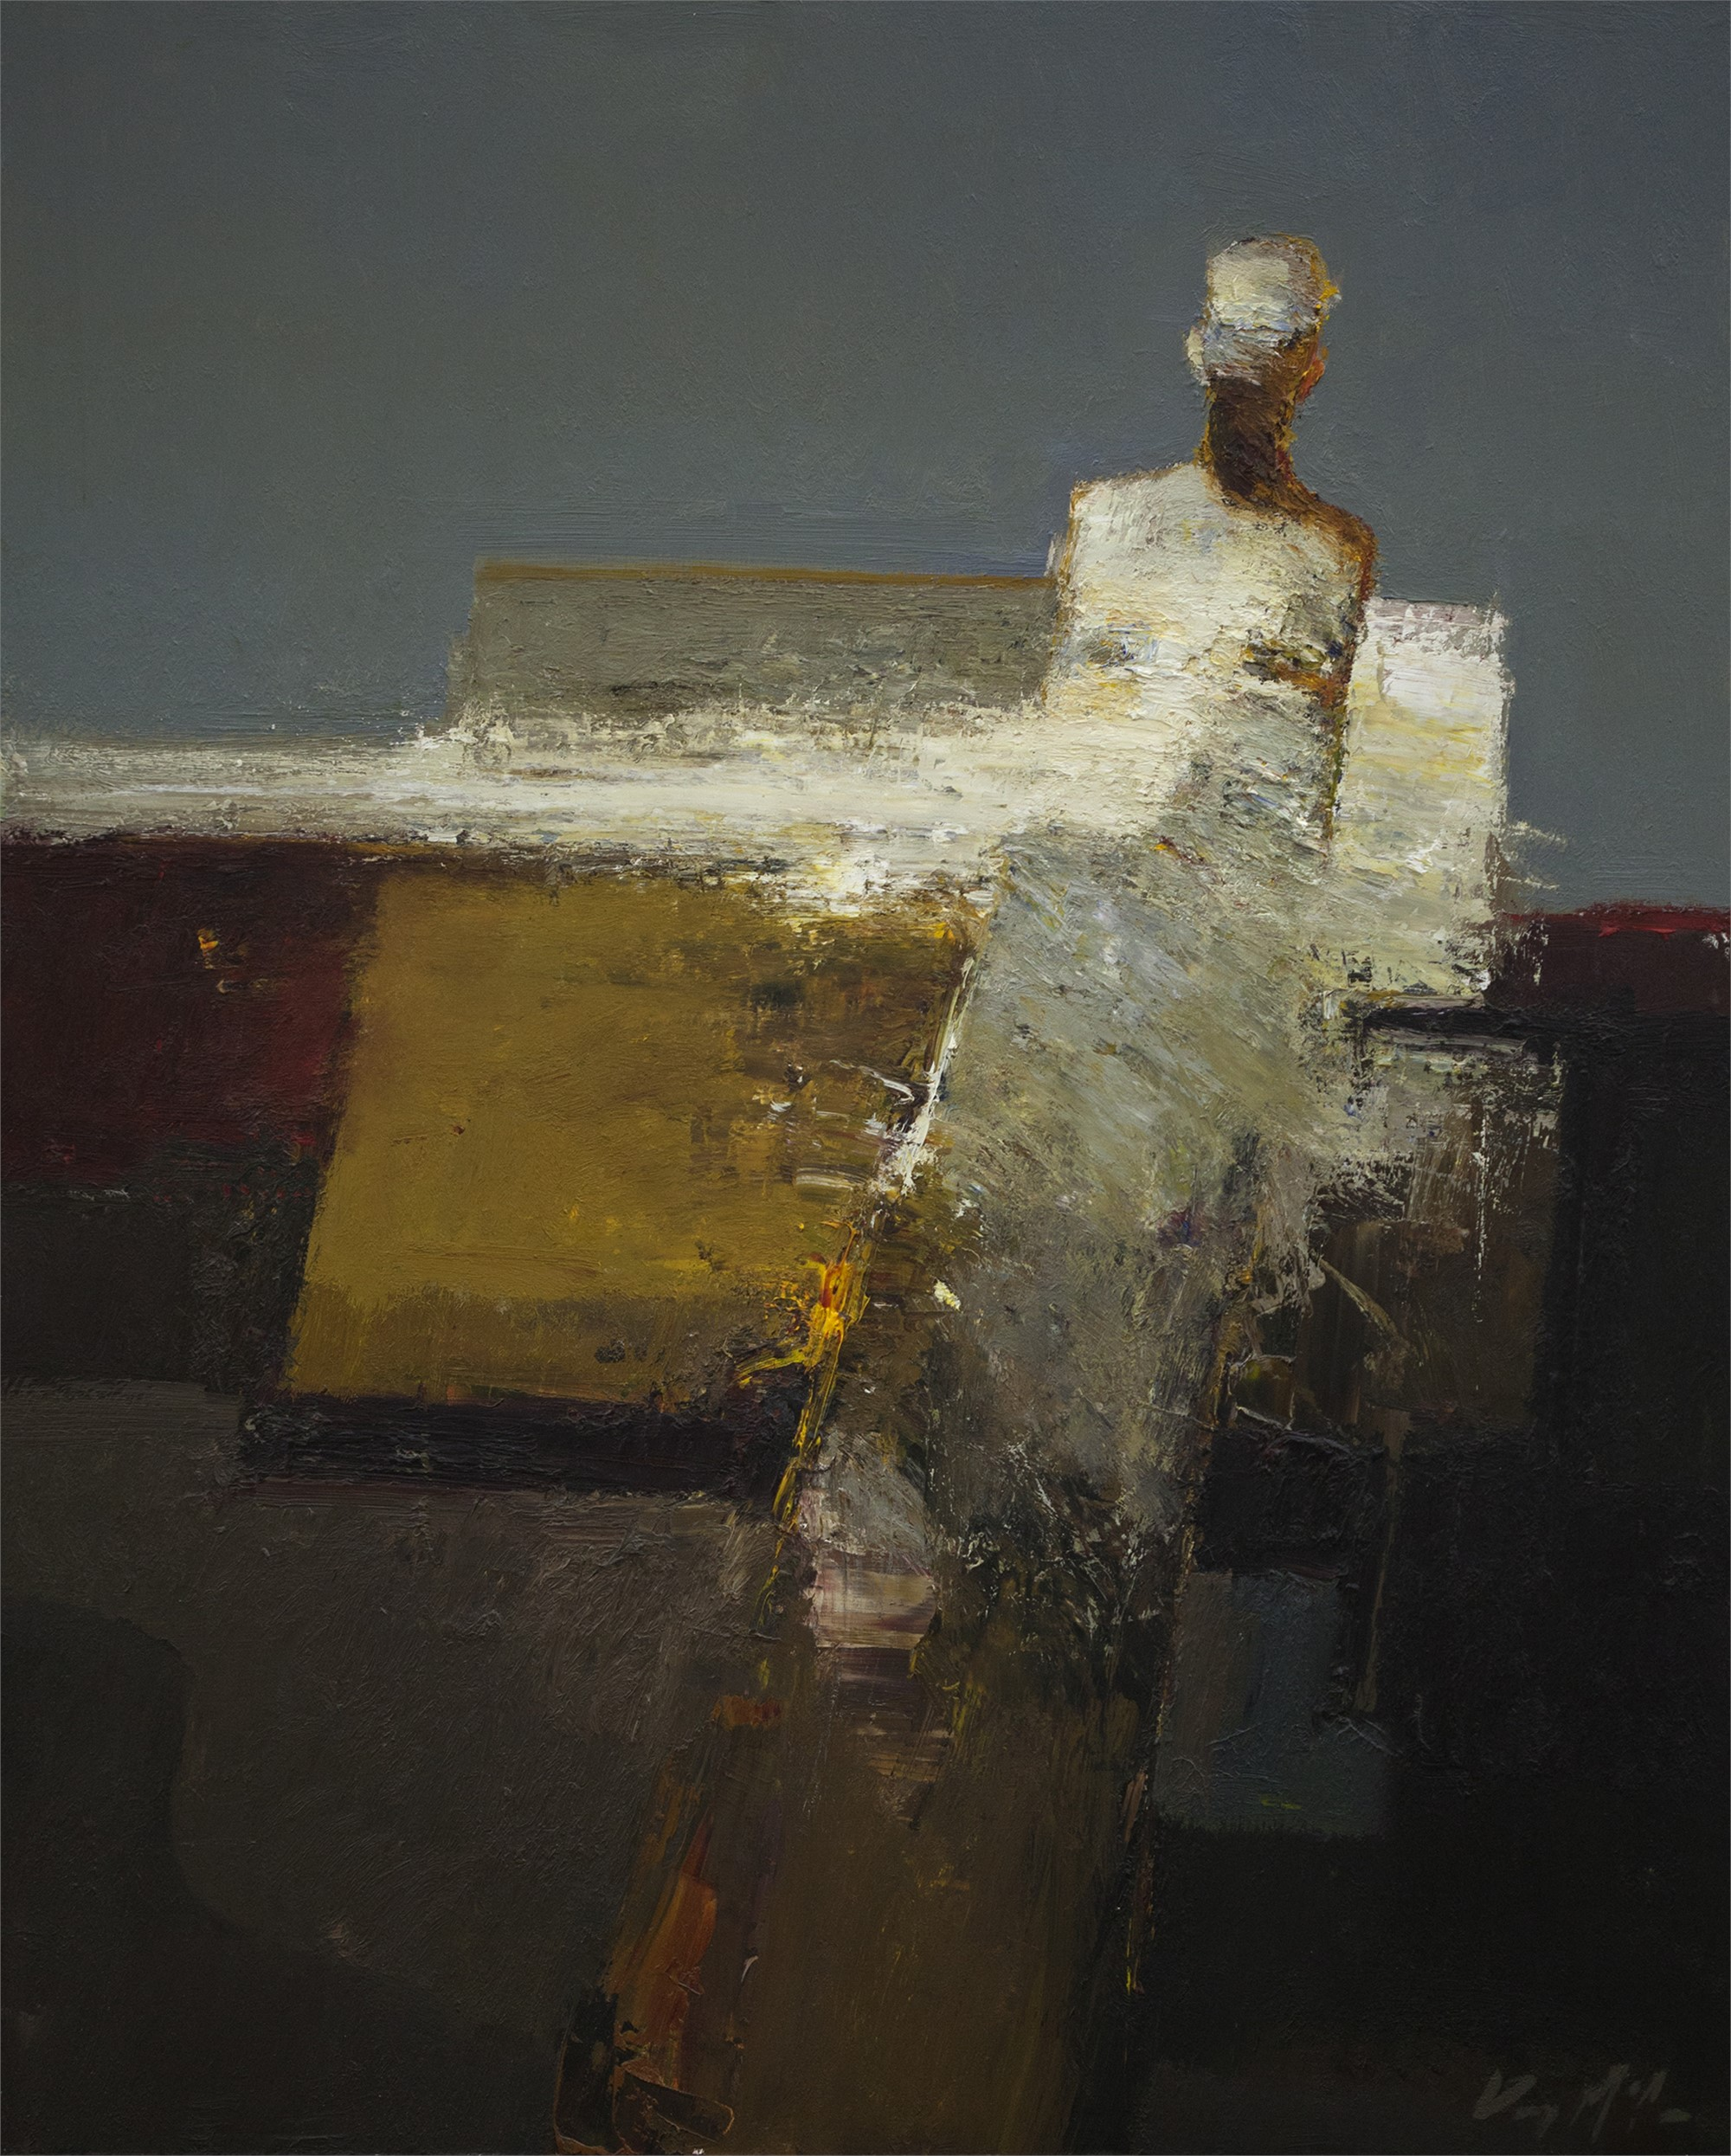 Observation by Danny McCaw